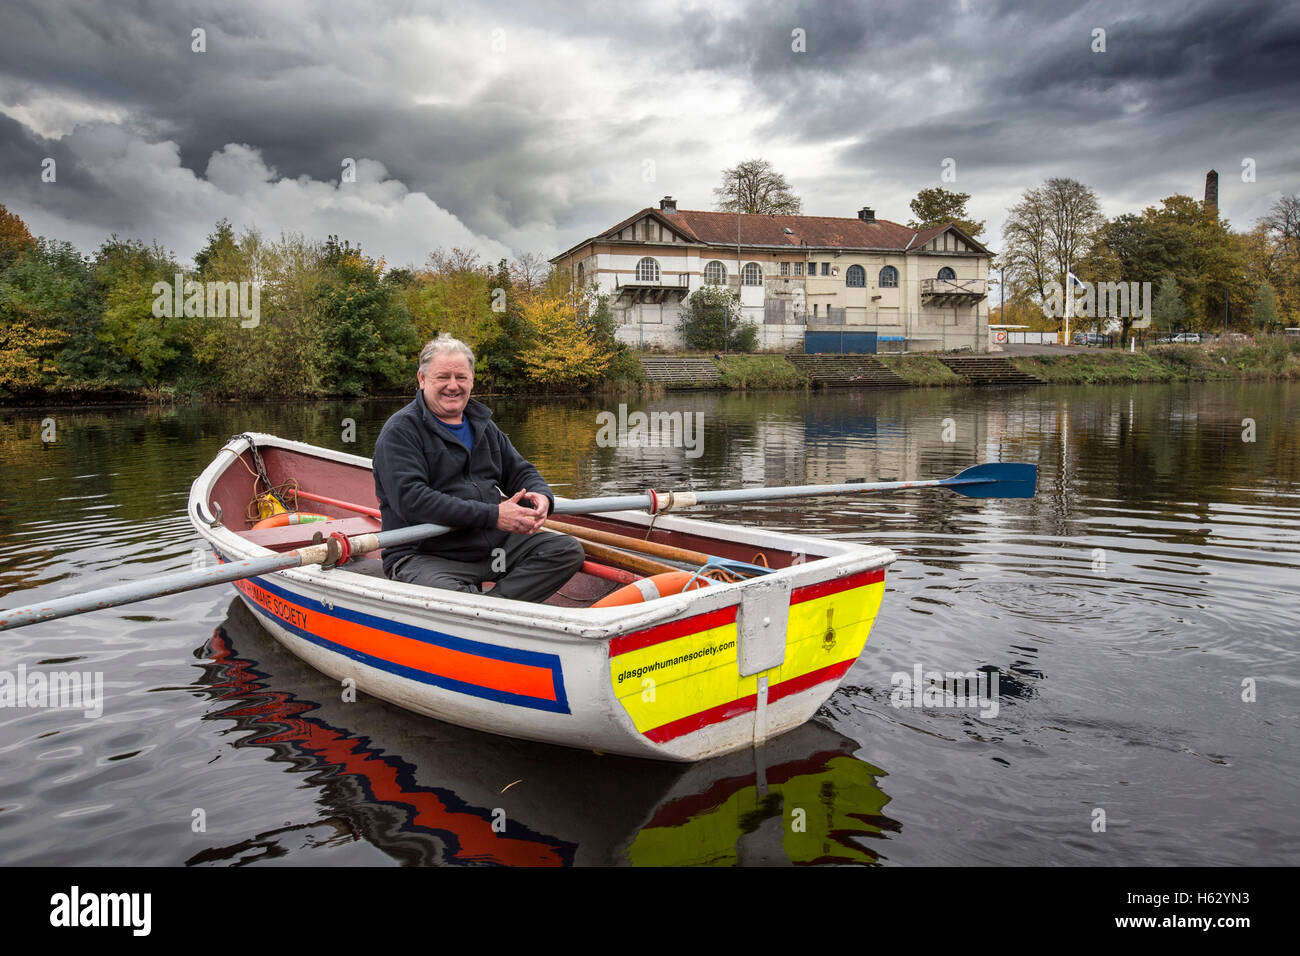 Glasgow Humane Society on river Clyde - Stock Image